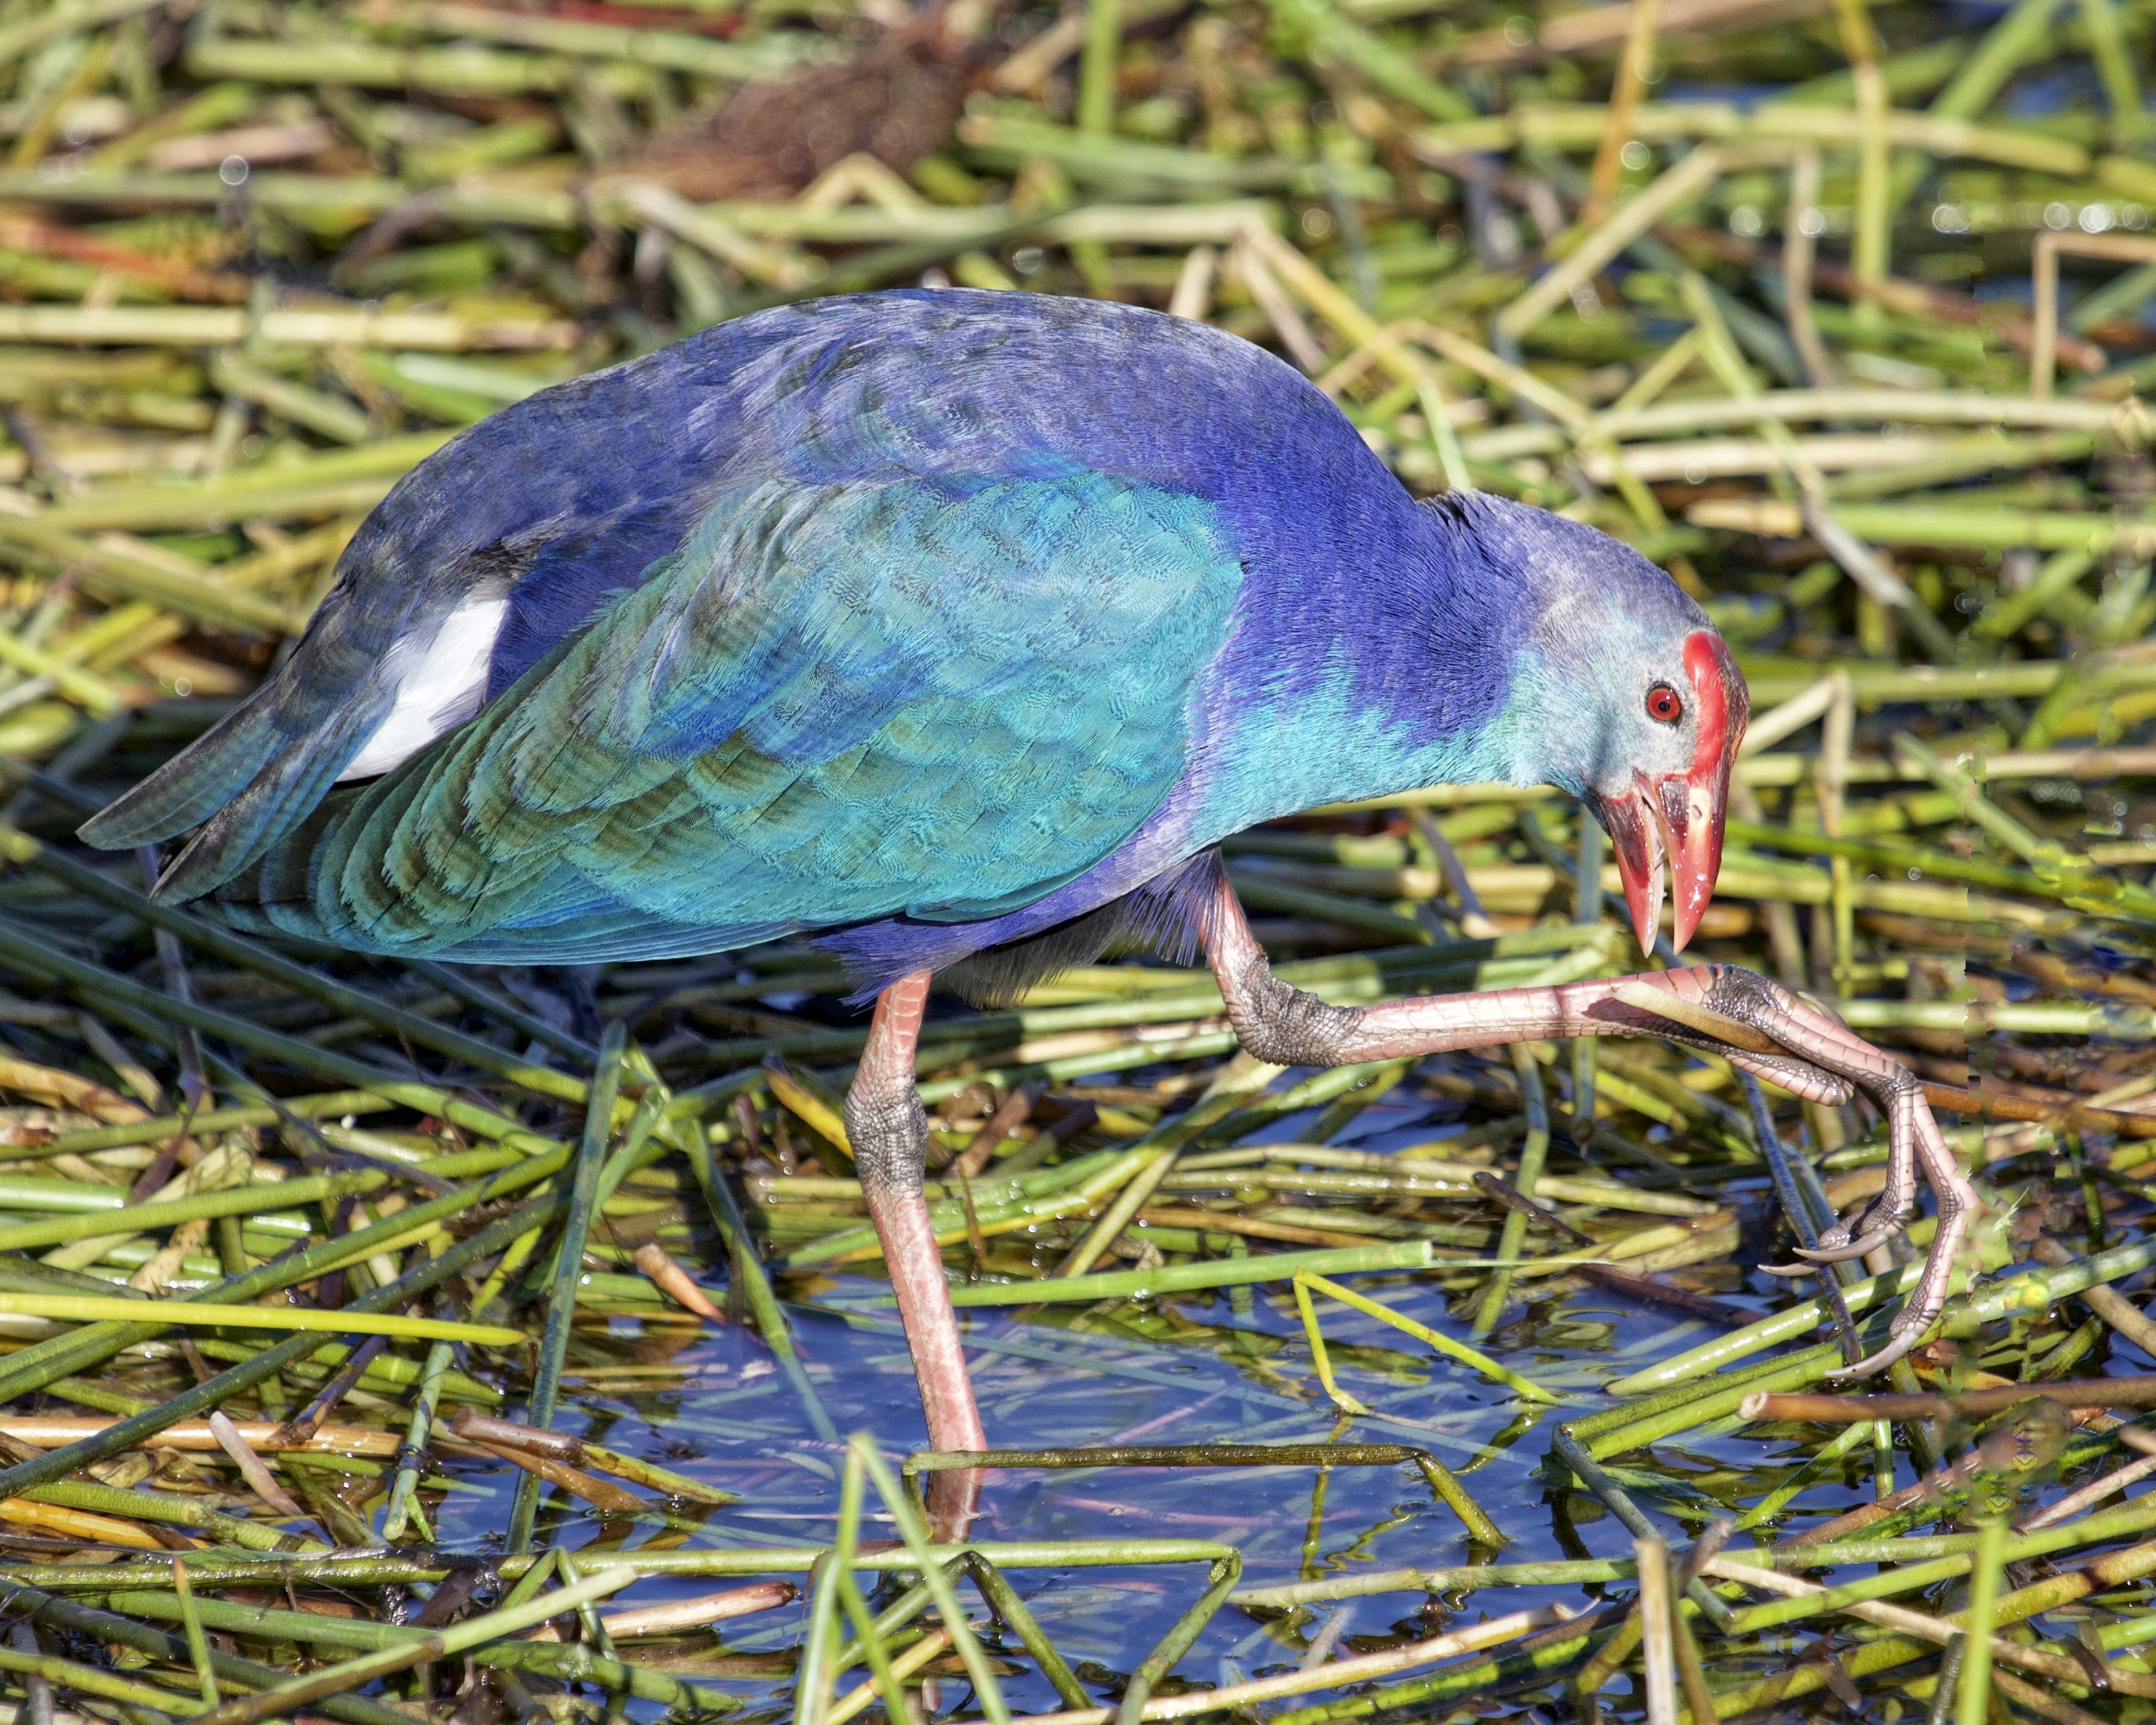 Royal, Magical, and Mystery aptly describe this bird..here feeding with its long toes to grasp the reeds.